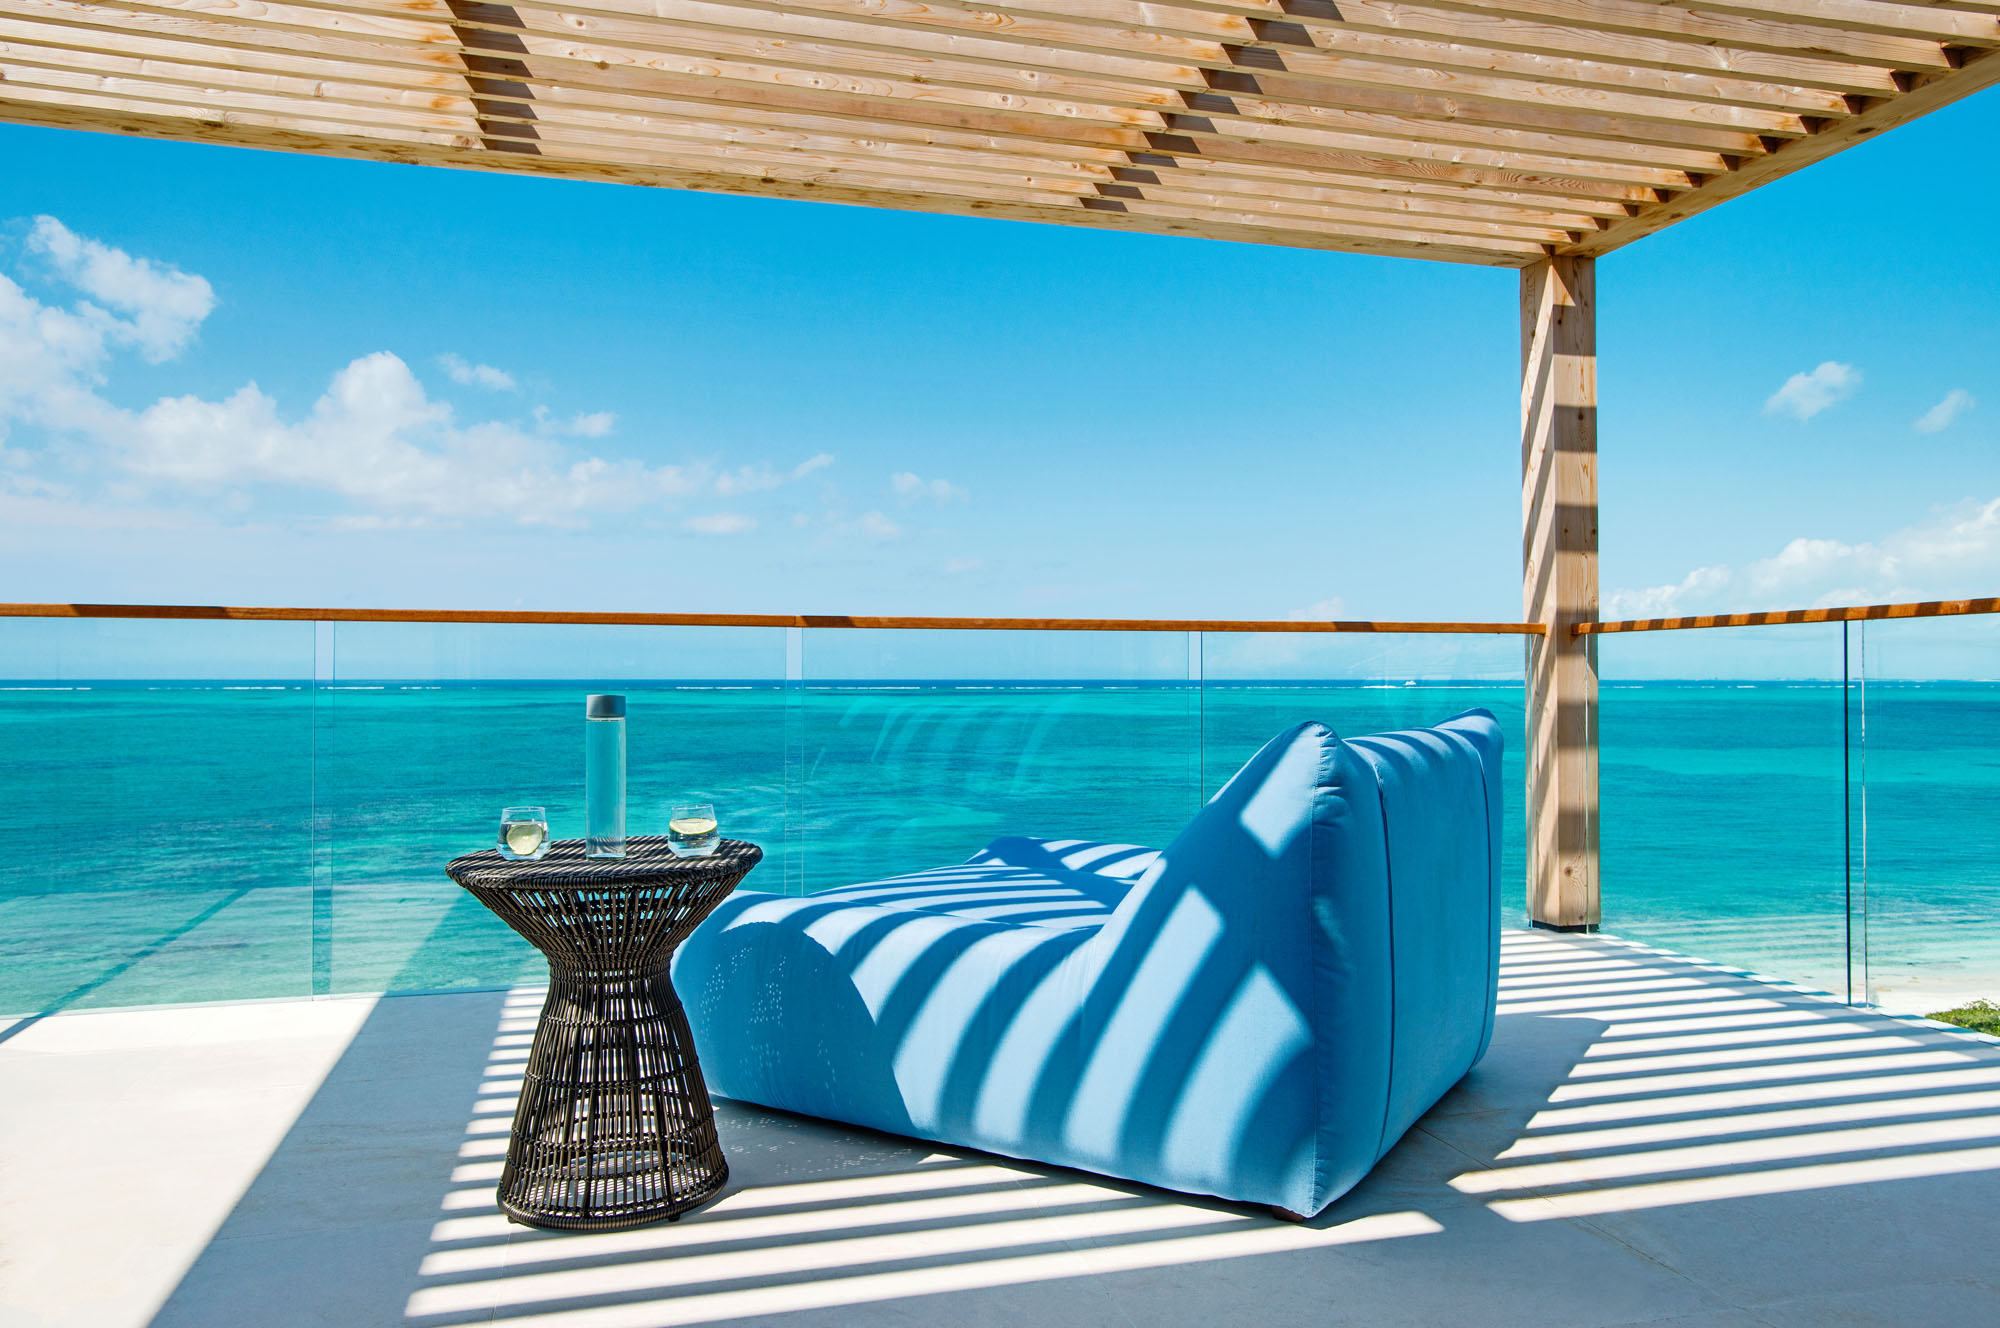 The master bathrooms of these Turks and Caicos luxury beach villa rentals are very spacious.